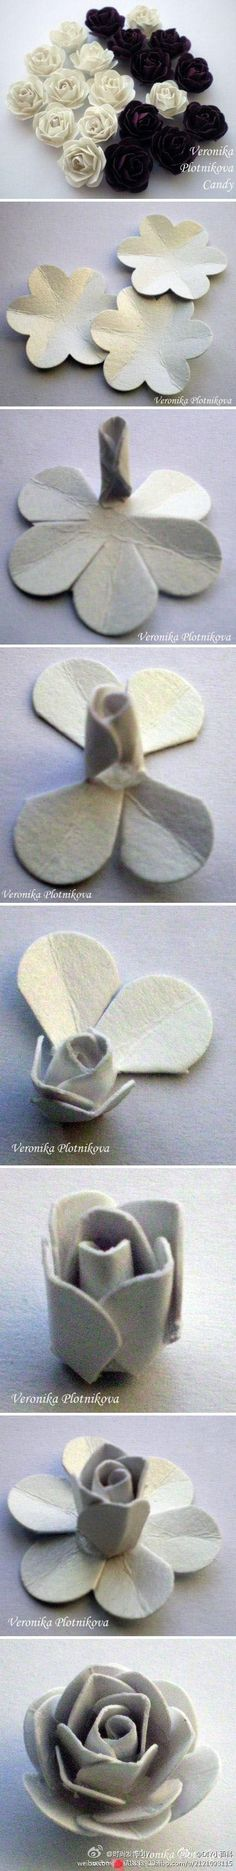 How to make a rose using 6-petal flower.